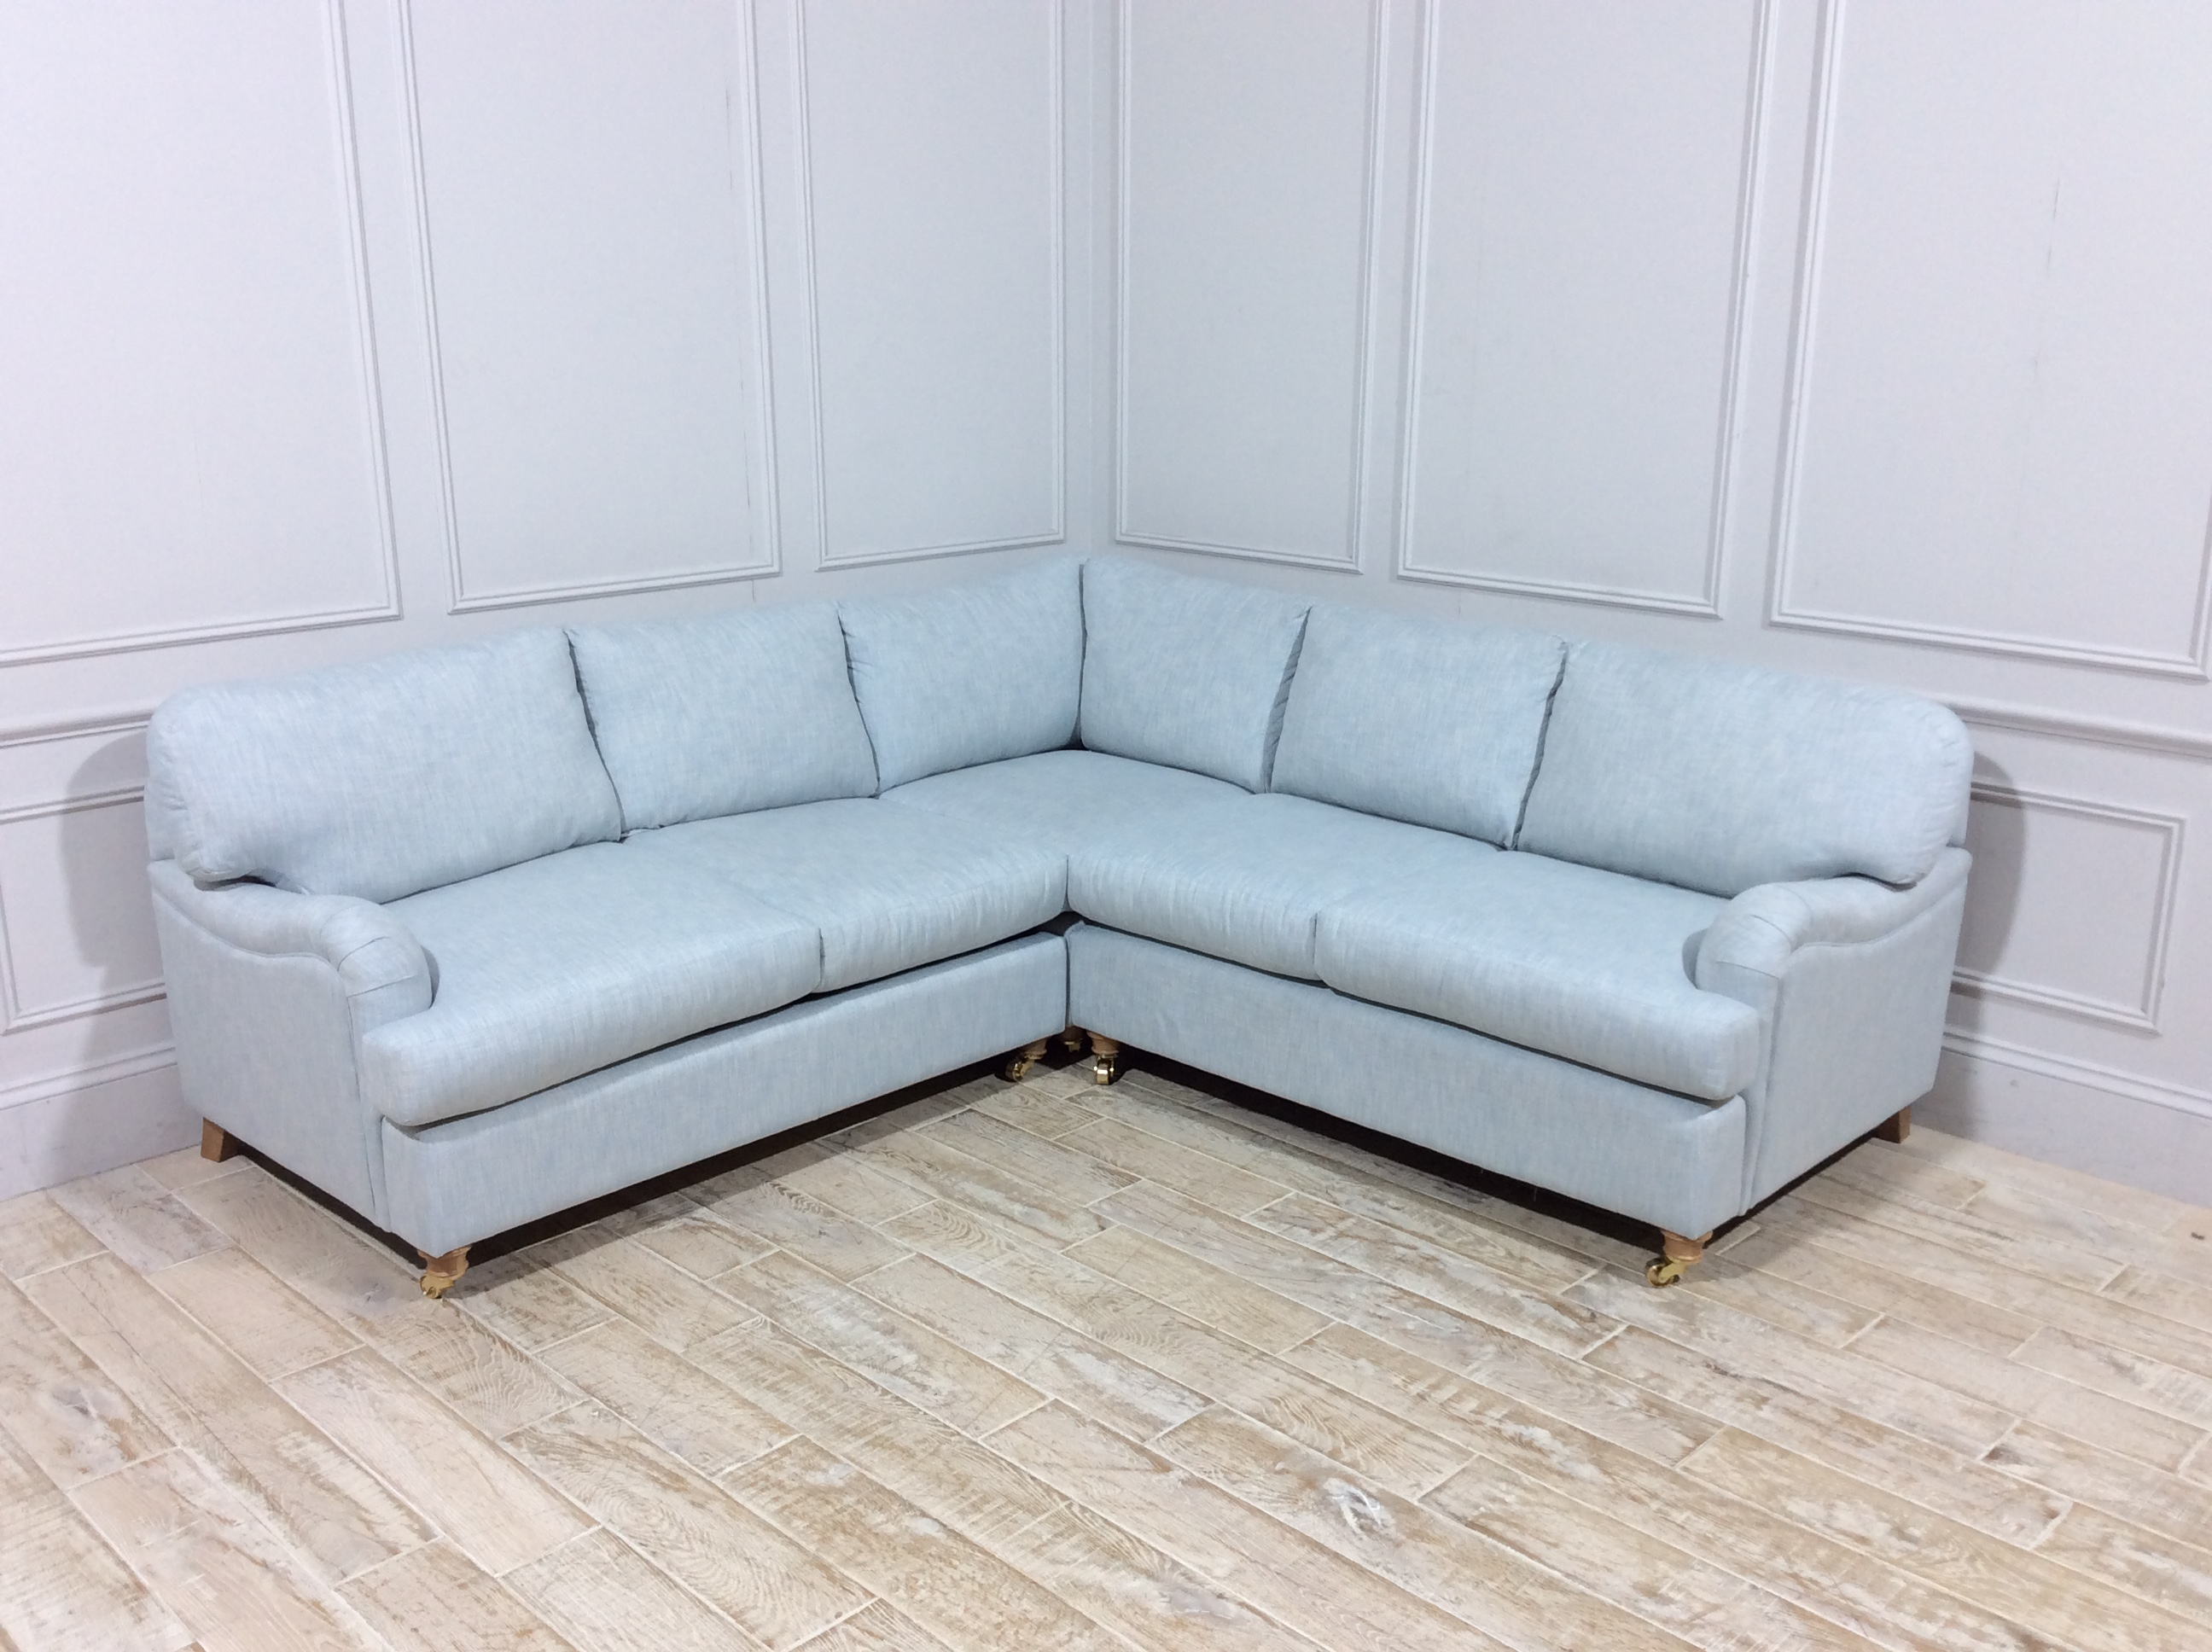 Helston 2 x 2 Seater Corner Sofa Bed in Washed Linen Ice Blue